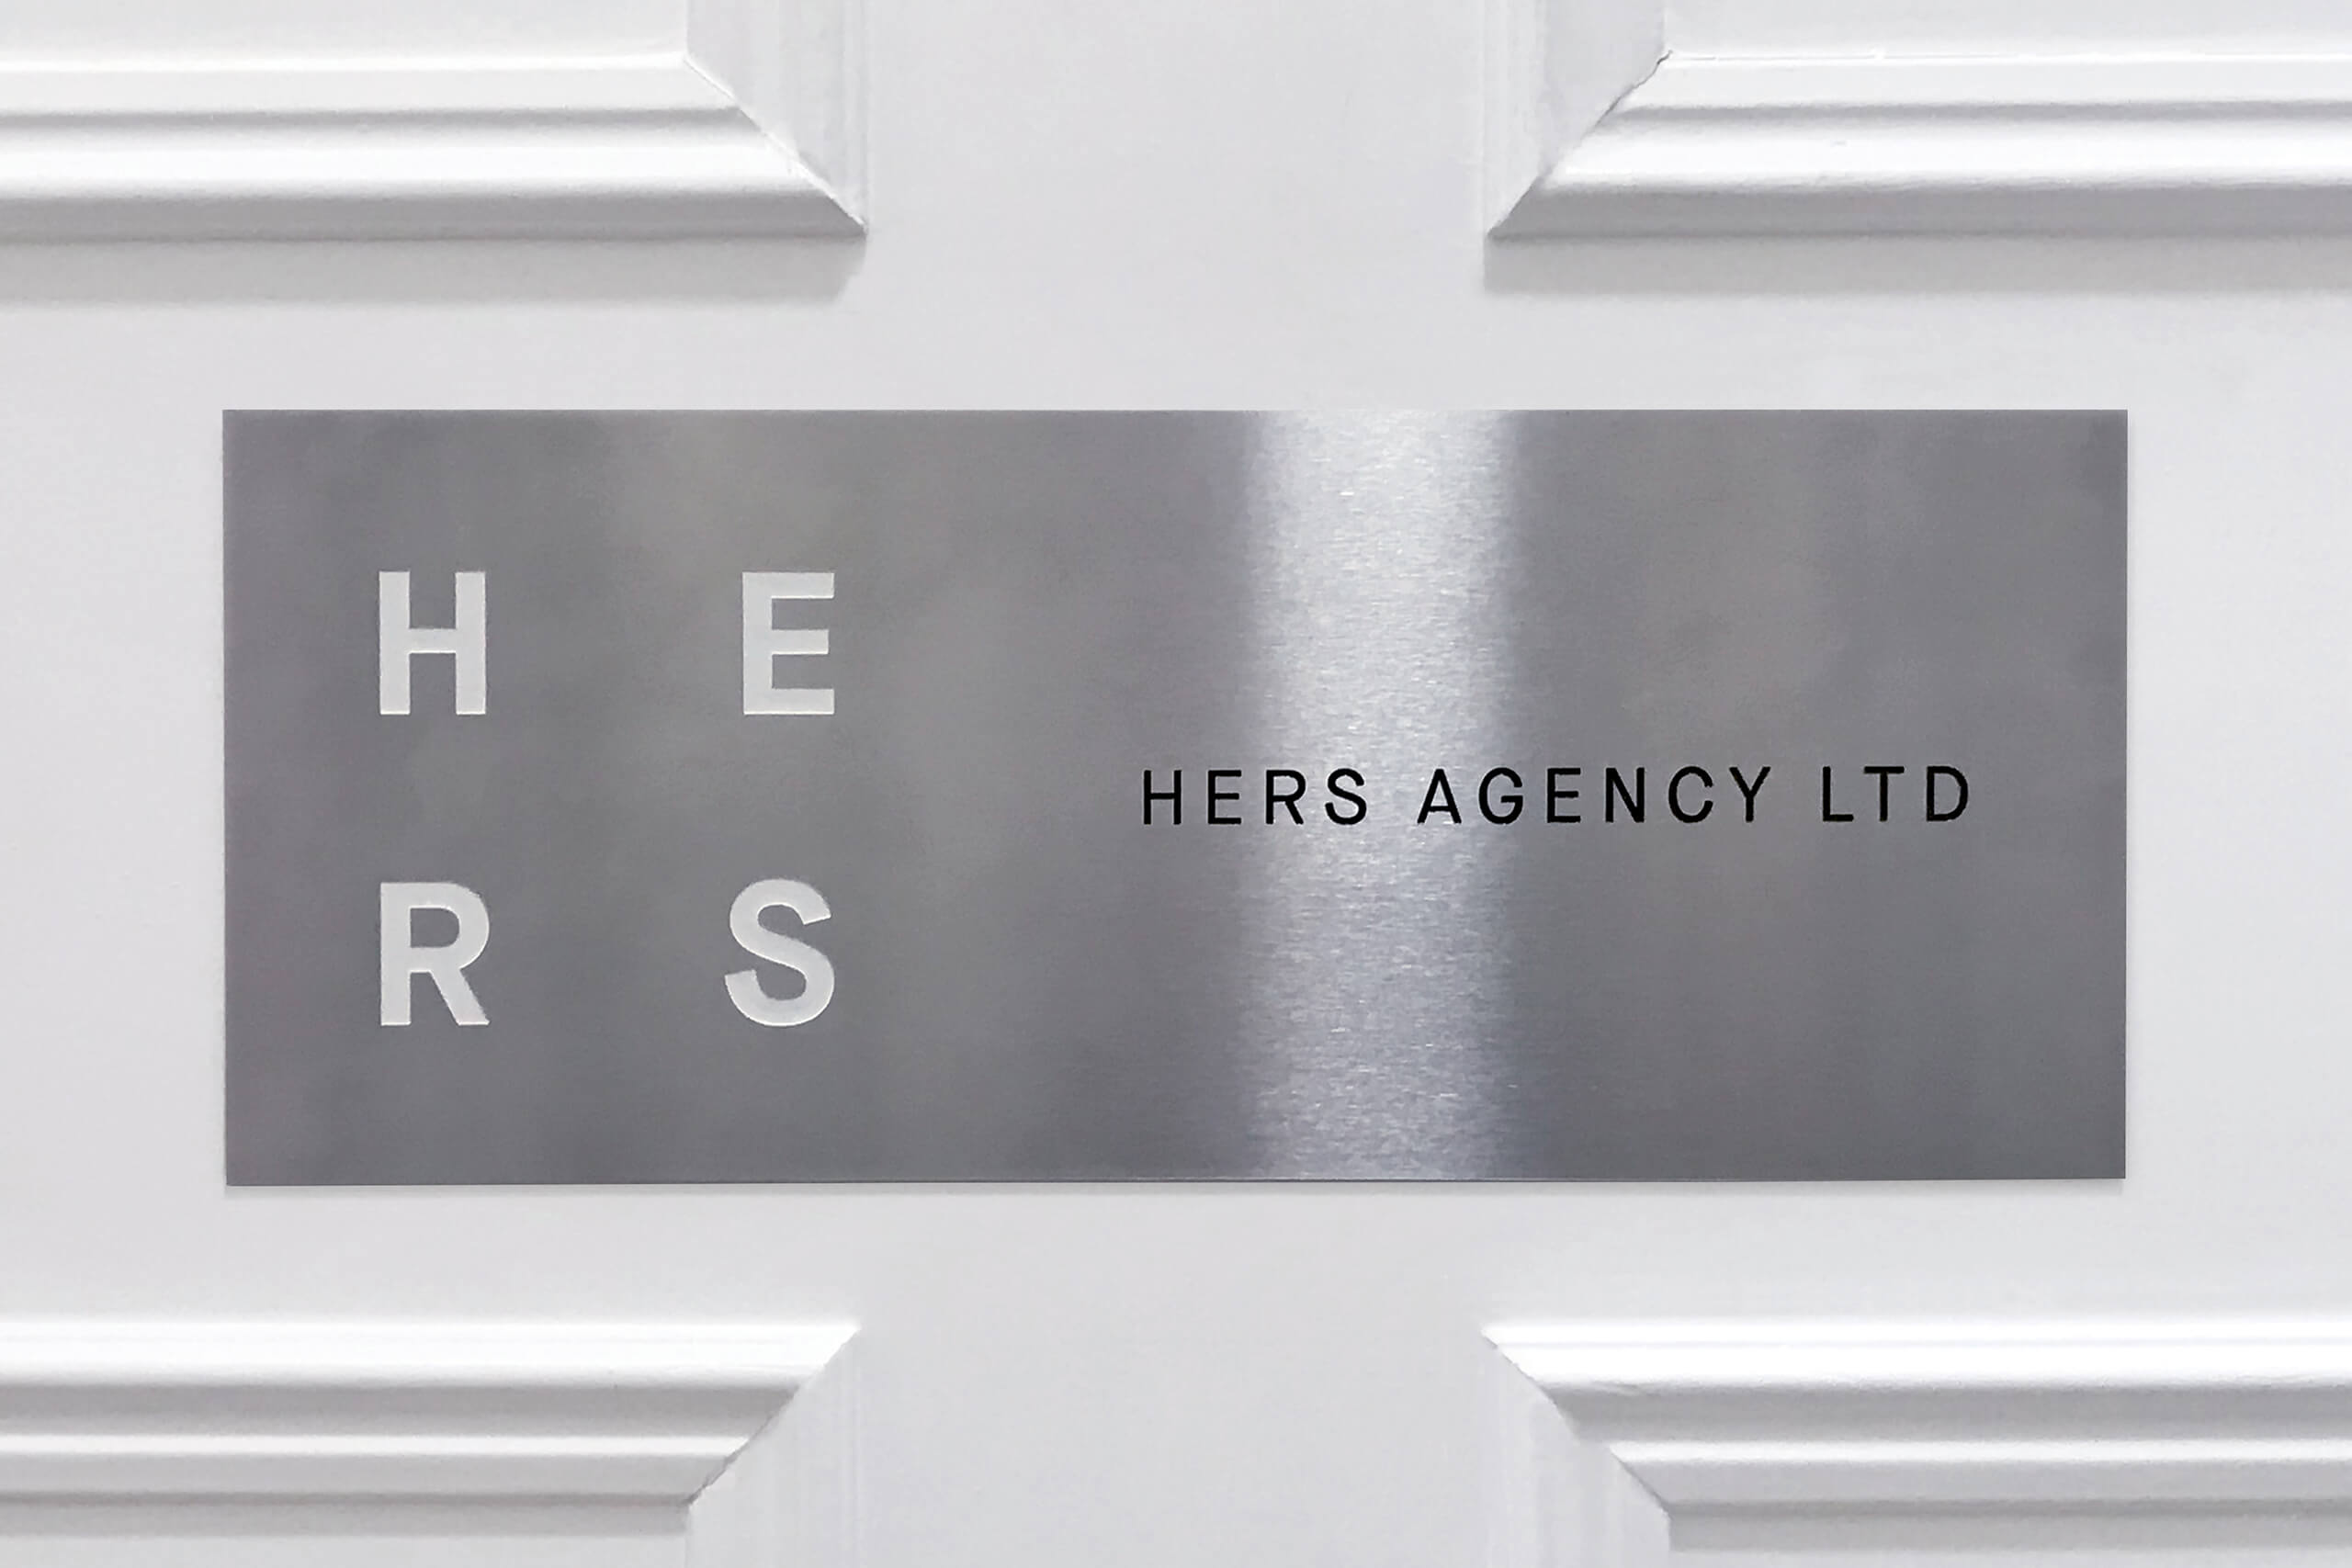 HERS Agency - Identity and applications